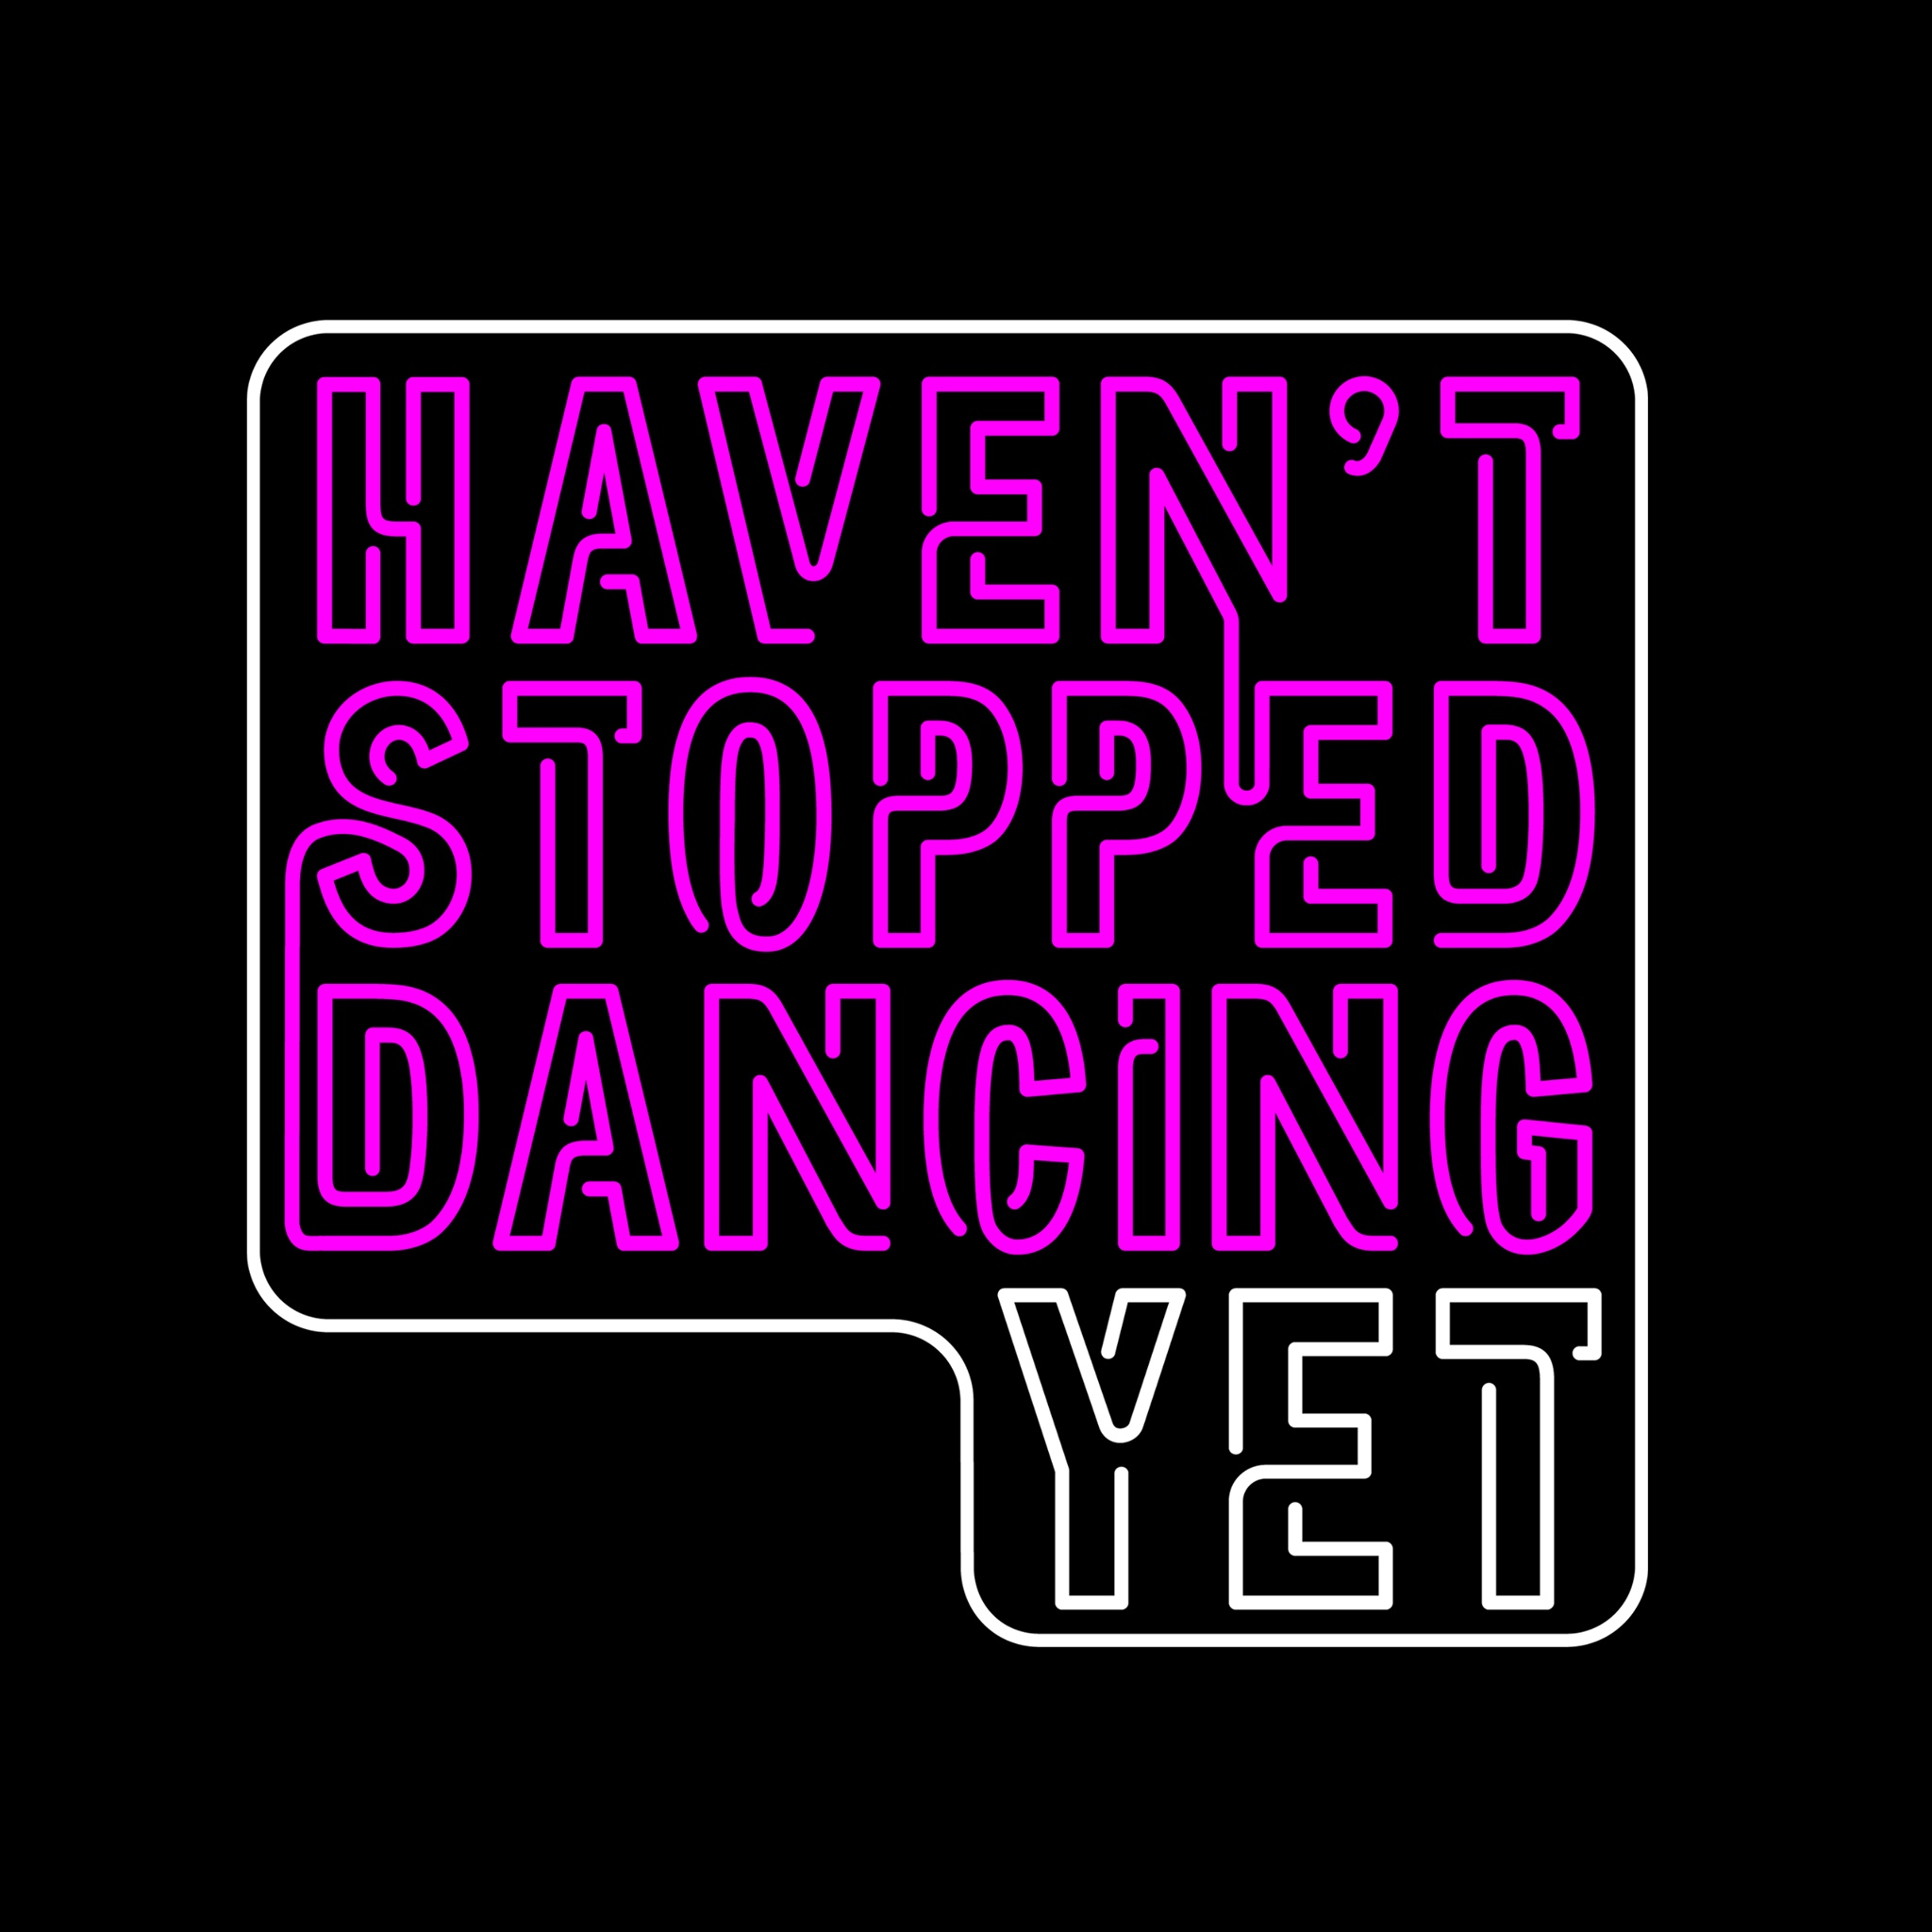 HAVEN'T STOPPED DANCING YET - ISLINGTON - Saturday 14th December 2019Time: 730pm - 1030pmVenue: Islington Assembly Halls, Islington